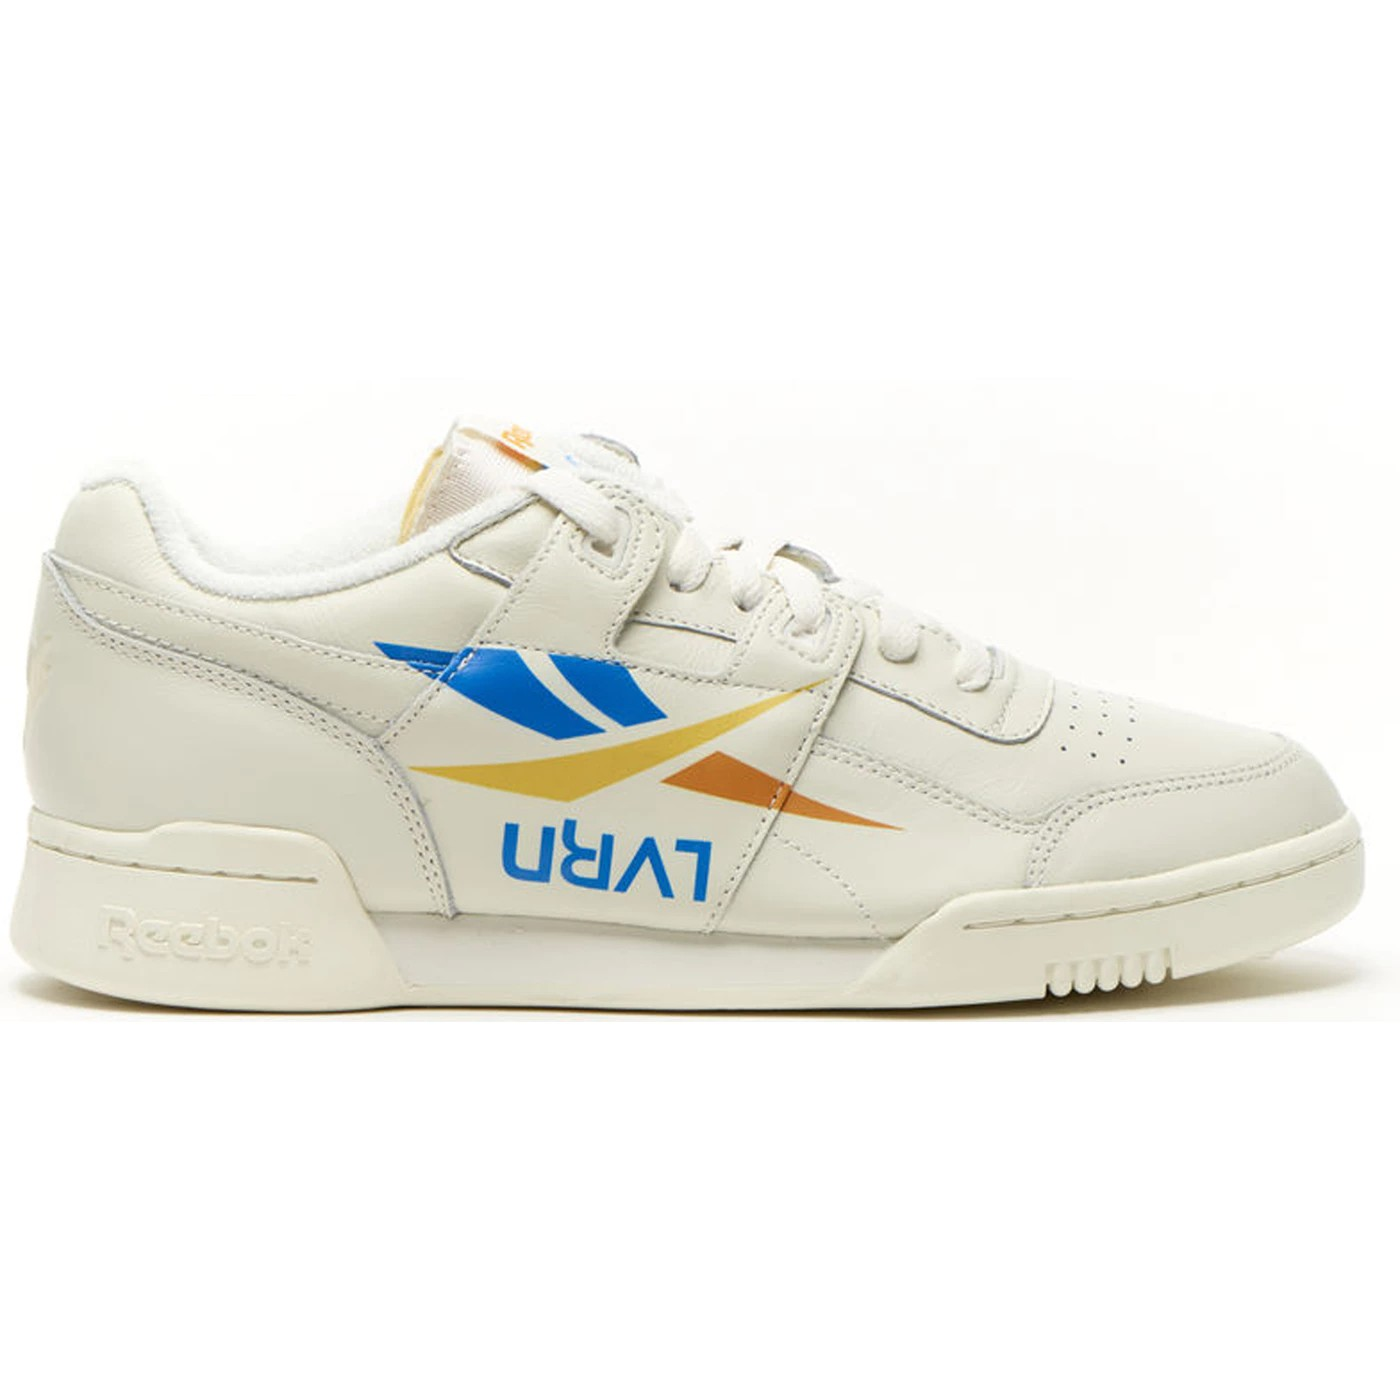 067e30a5fa61e Details about Reebok Workout Plus x 3AM ATL (Lvrn-Chalk Blue Yellow Or) Men s  Shoes DV4844